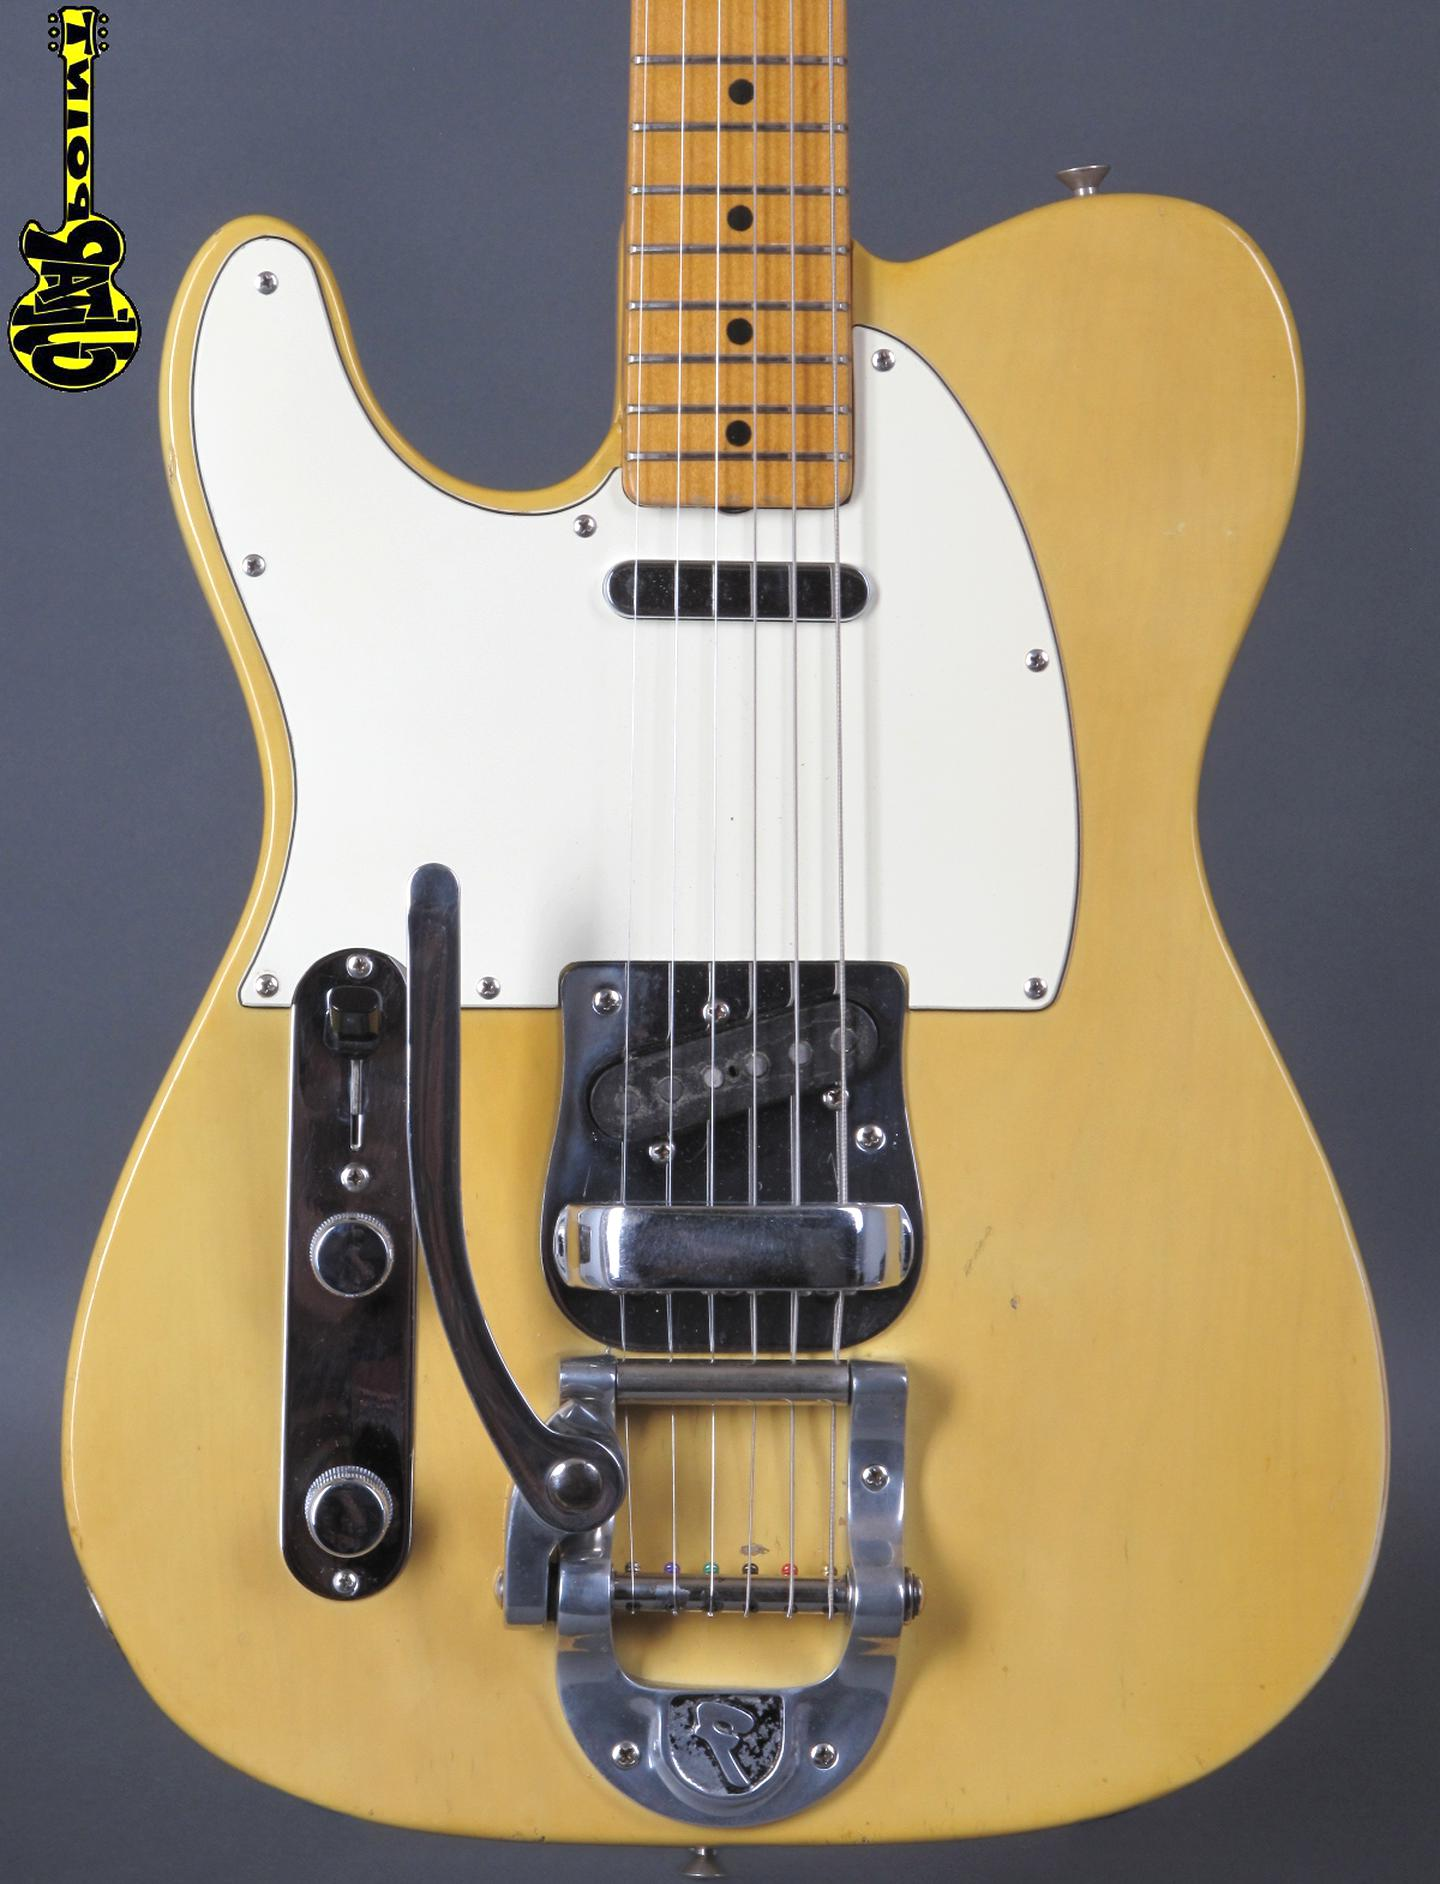 Datant Stratocaster cou